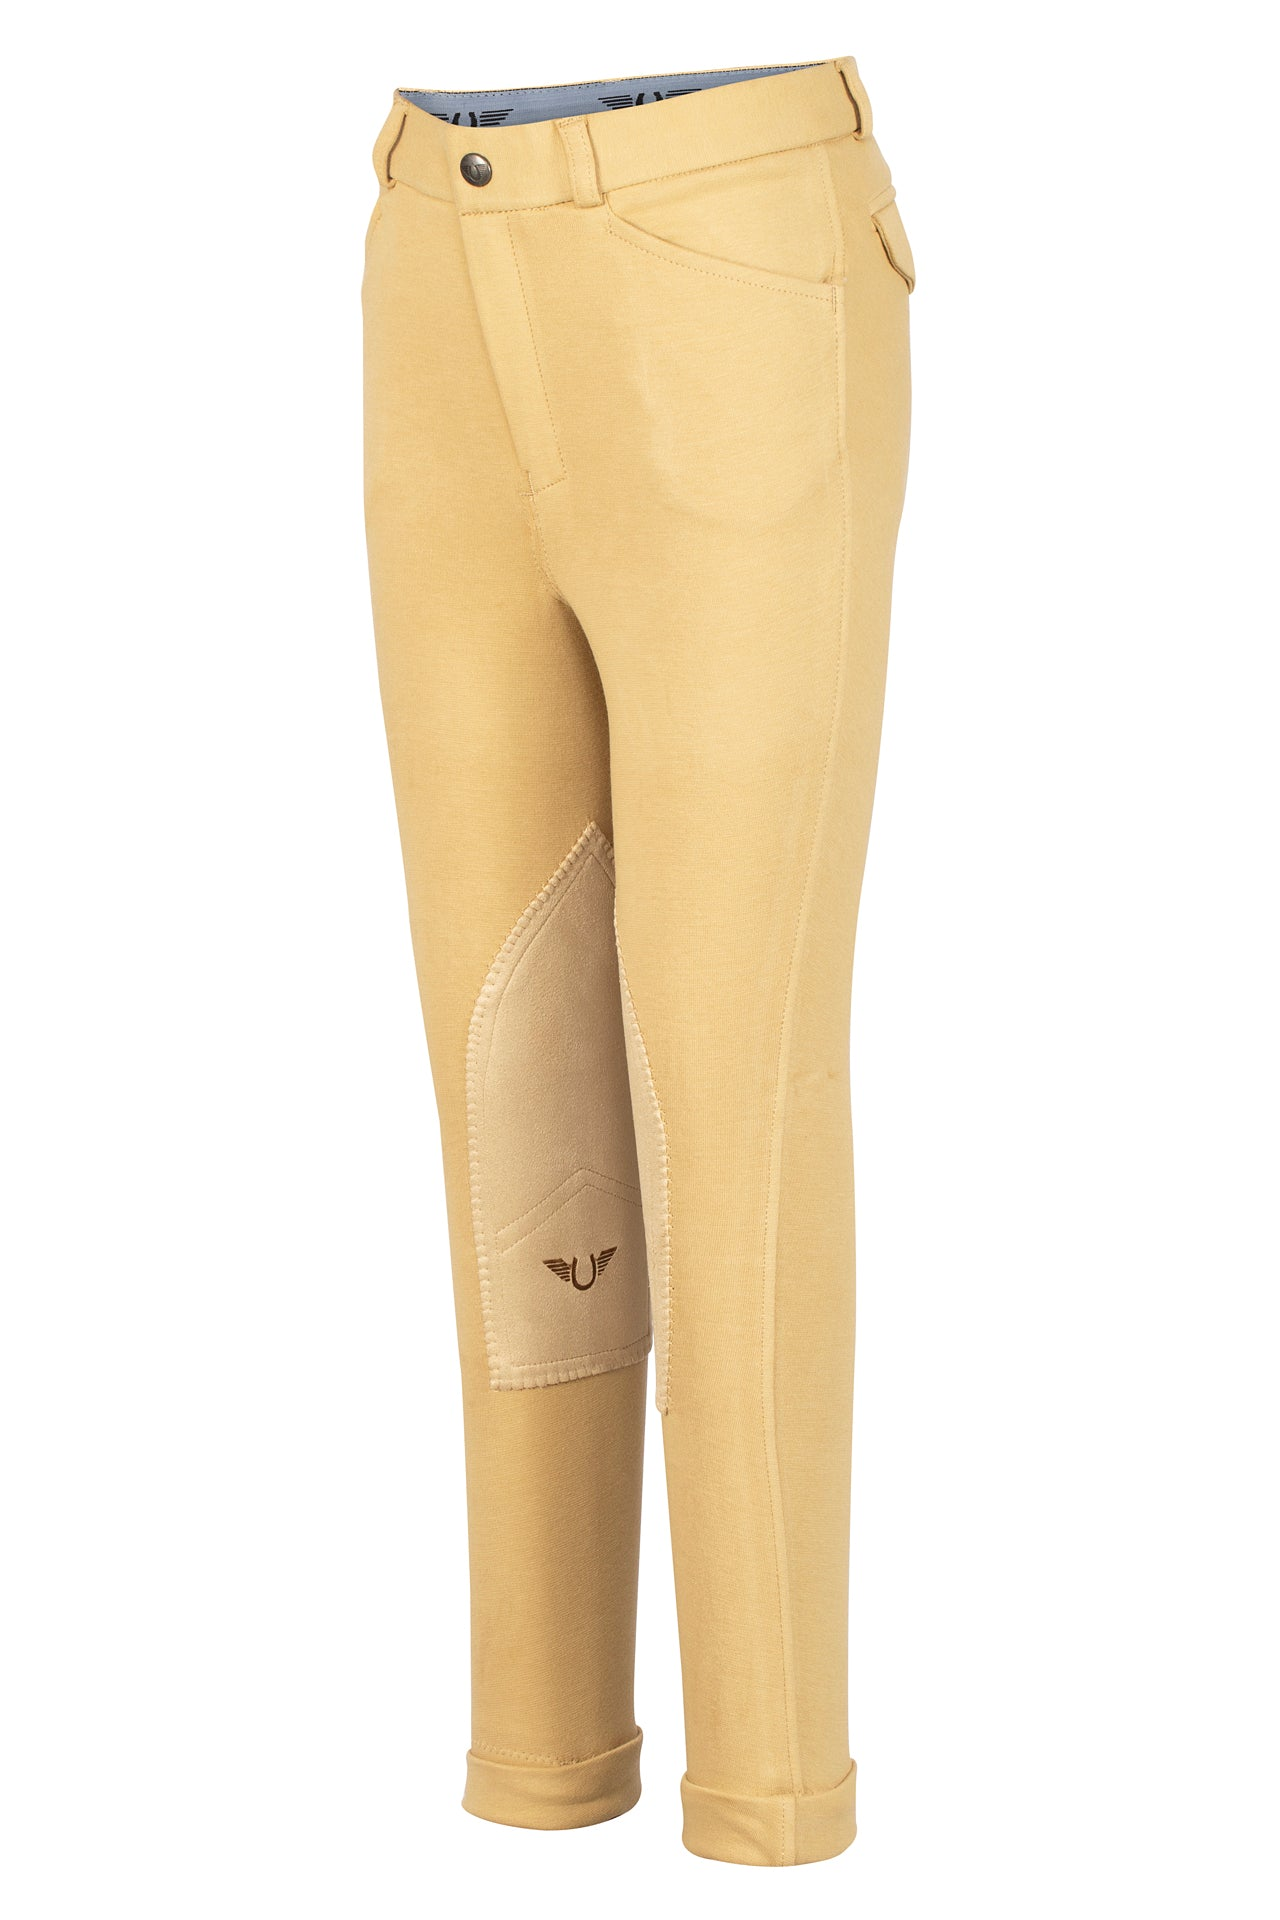 TuffRider Boys Patrol Light Jodhpurs_784